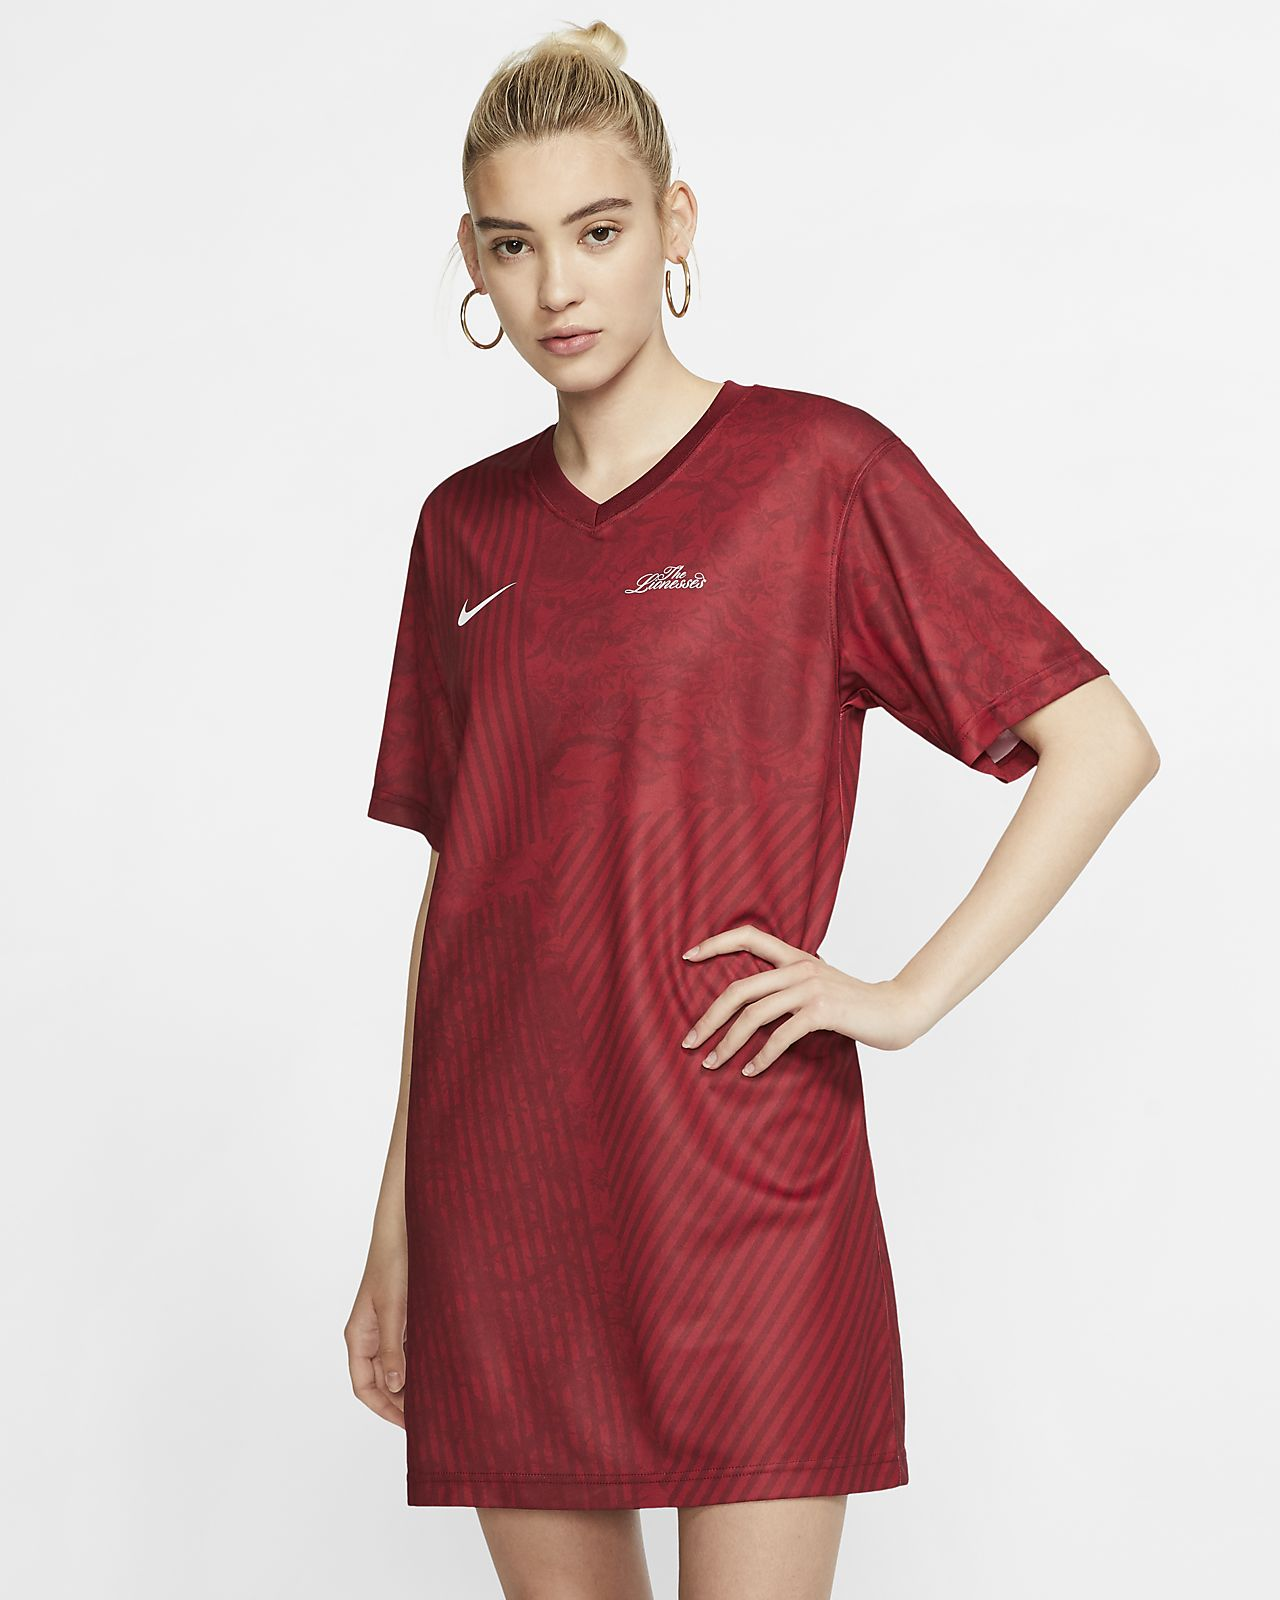 Nike Sportswear Unité Totale Women's Dress